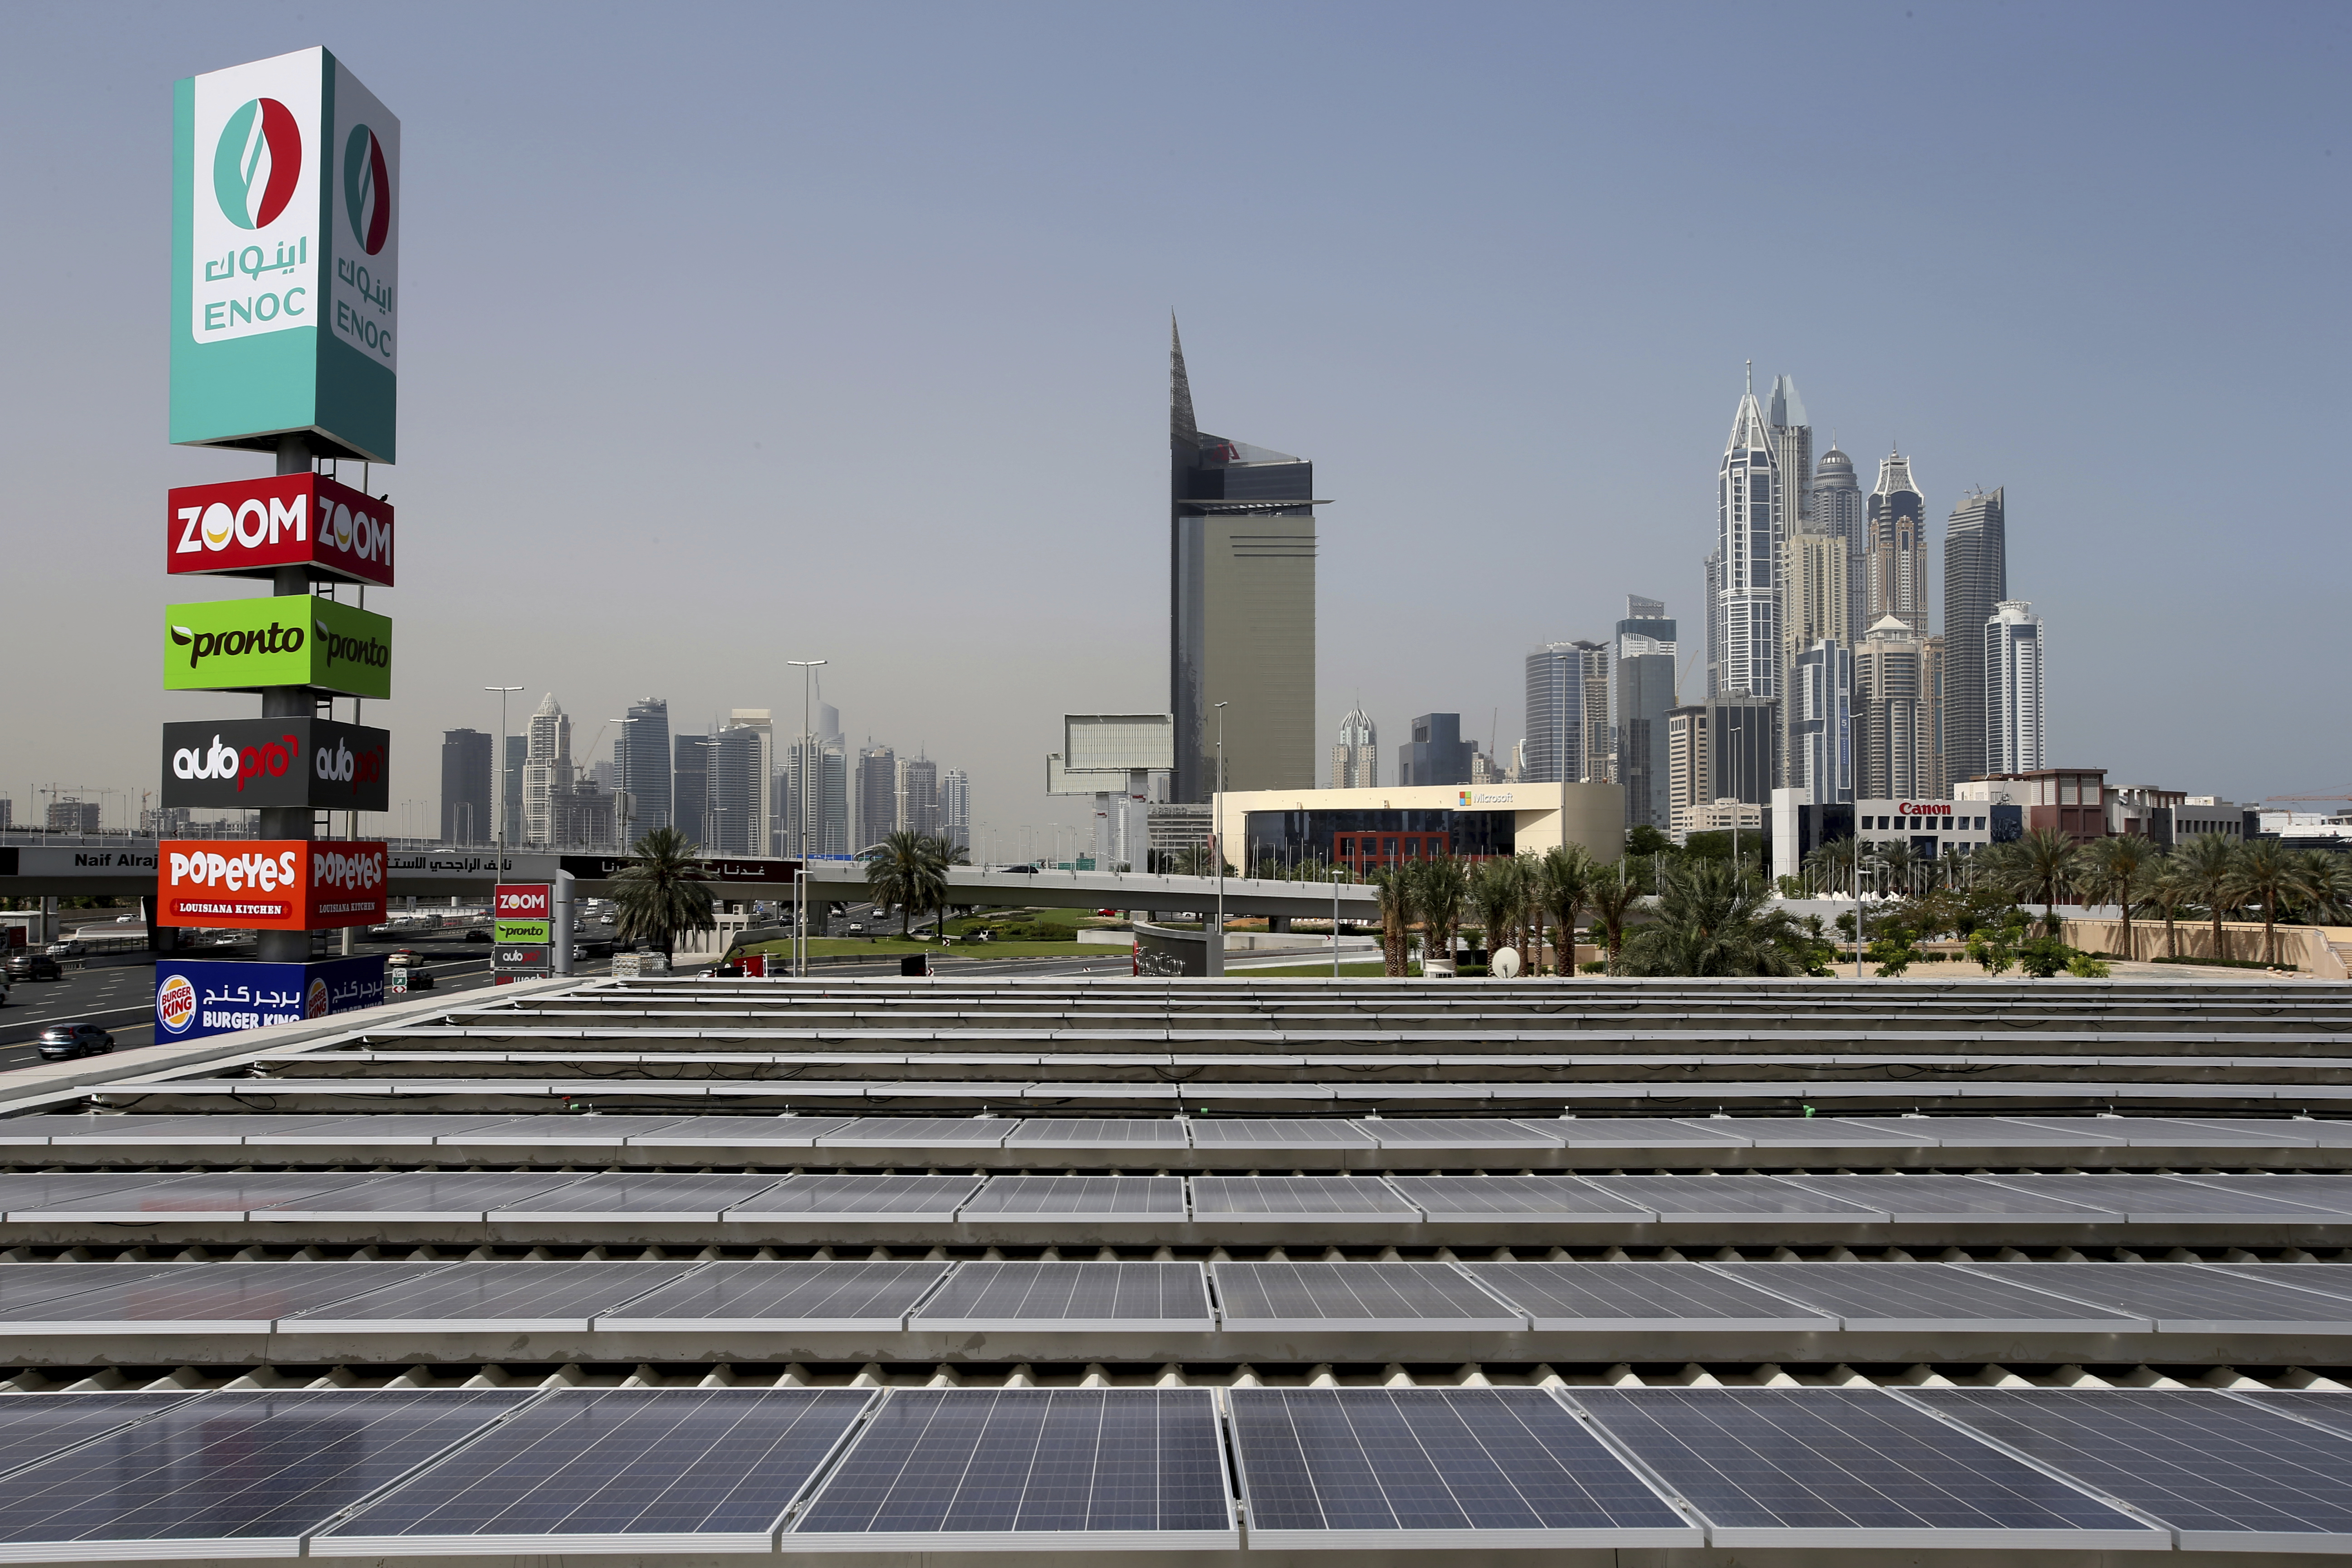 Dubai Solar Service Station-1 Solar panels power an Emirates National Oil Company gas station, in Dubai, United Arab Emirates, Thursday, April 27, 2017. The government-owned oil company said Wednesday the country's first solar-powered gas station in Dubai, on the city's main Sheikh Zayed Road thoroughfare, is covered with solar panels that can generate up to 120 kilowatt hours. (AP Photo/Kamran Jebreili)